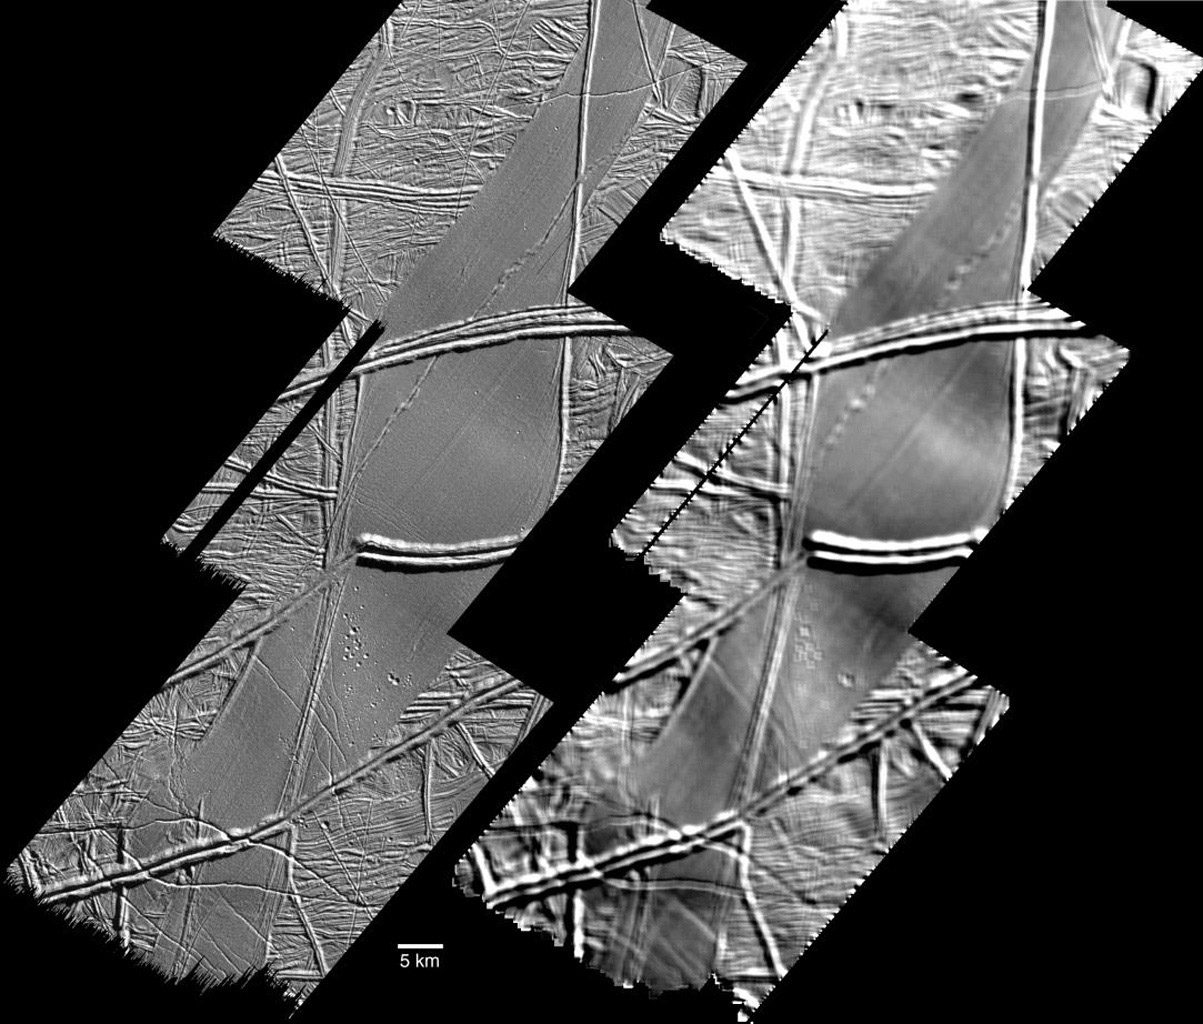 This image, acquired by NASA's Galileo spacecraft on September 26, 1998, shows features on the surface of Jupiter's moon Europa that a scientific report published today interprets as signs of compressive folding.